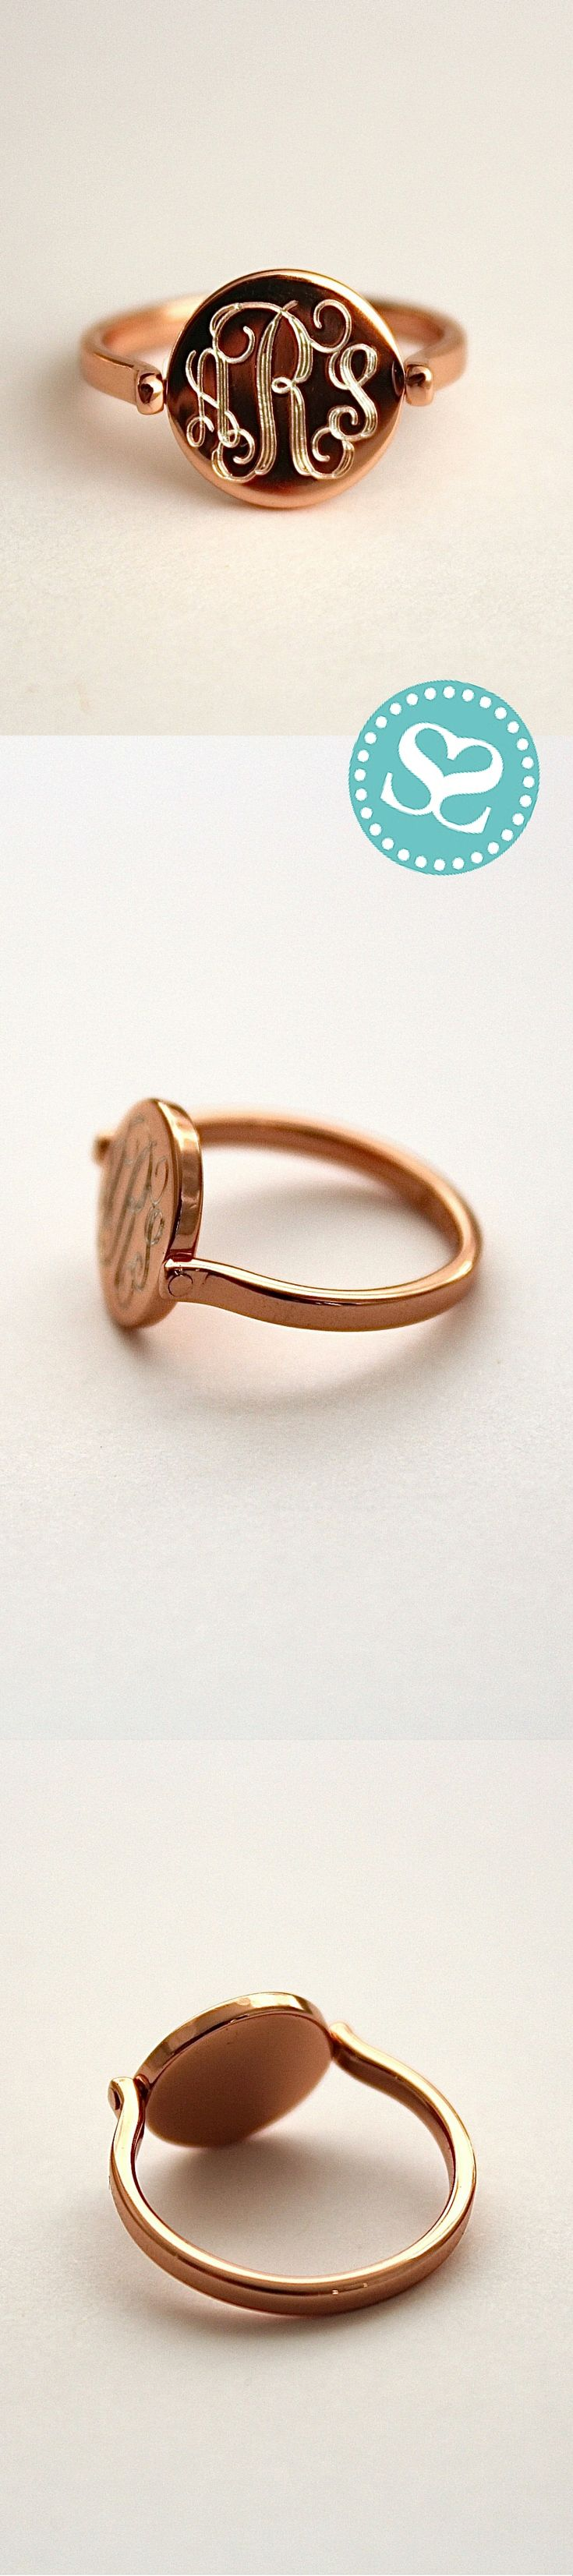 wedding signet rings front us monogram accessories products eng jewelry vuitton ring louis fashion